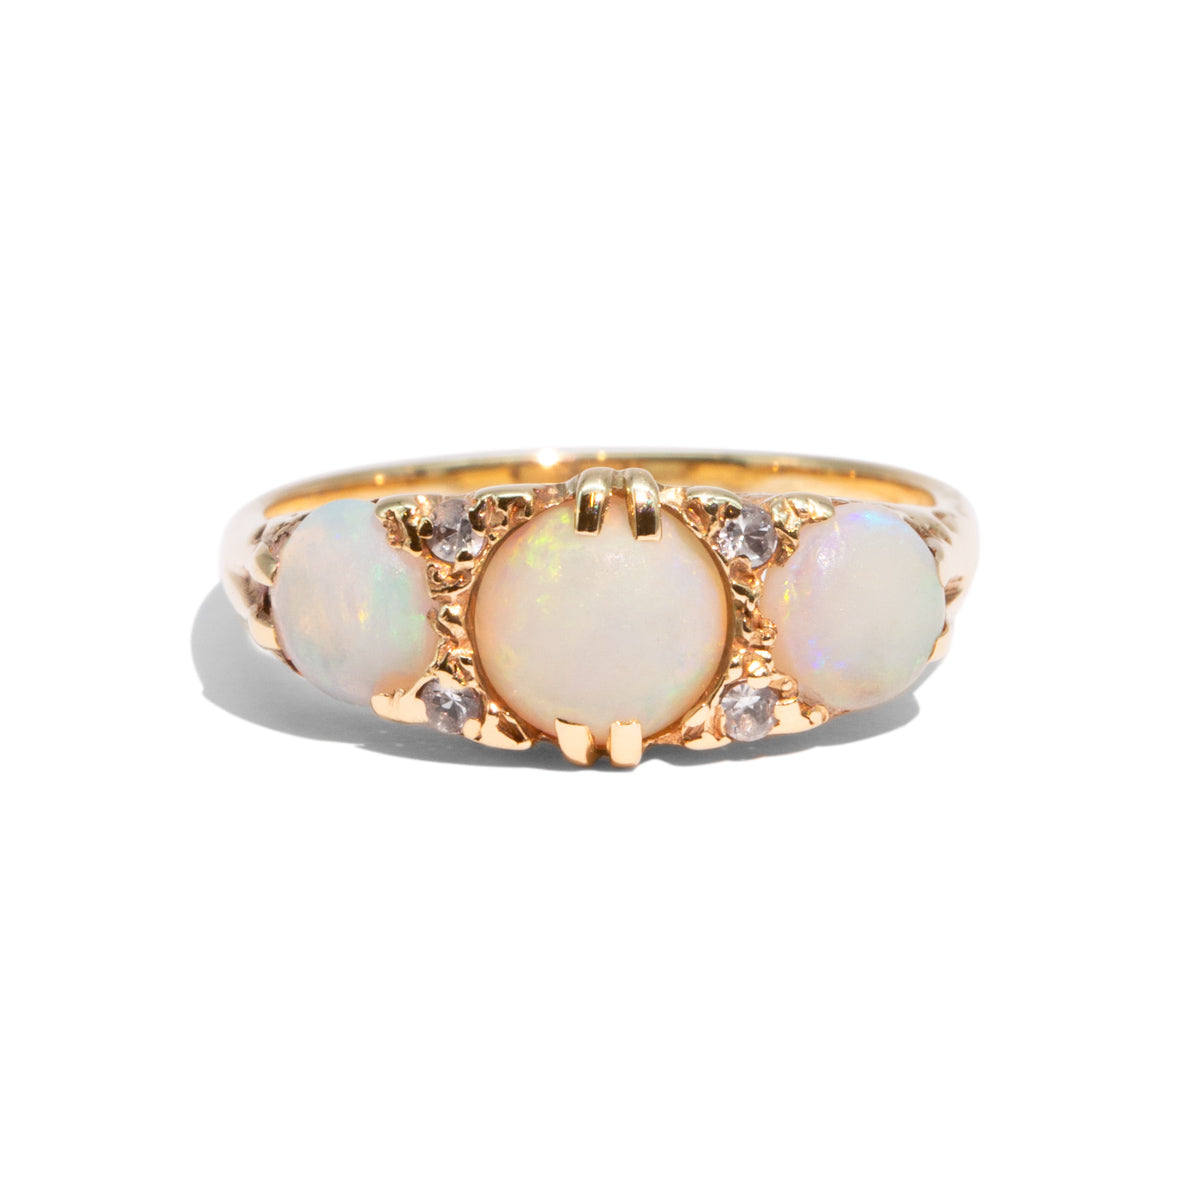 The Hermione Vintage Opal & Diamond Ring